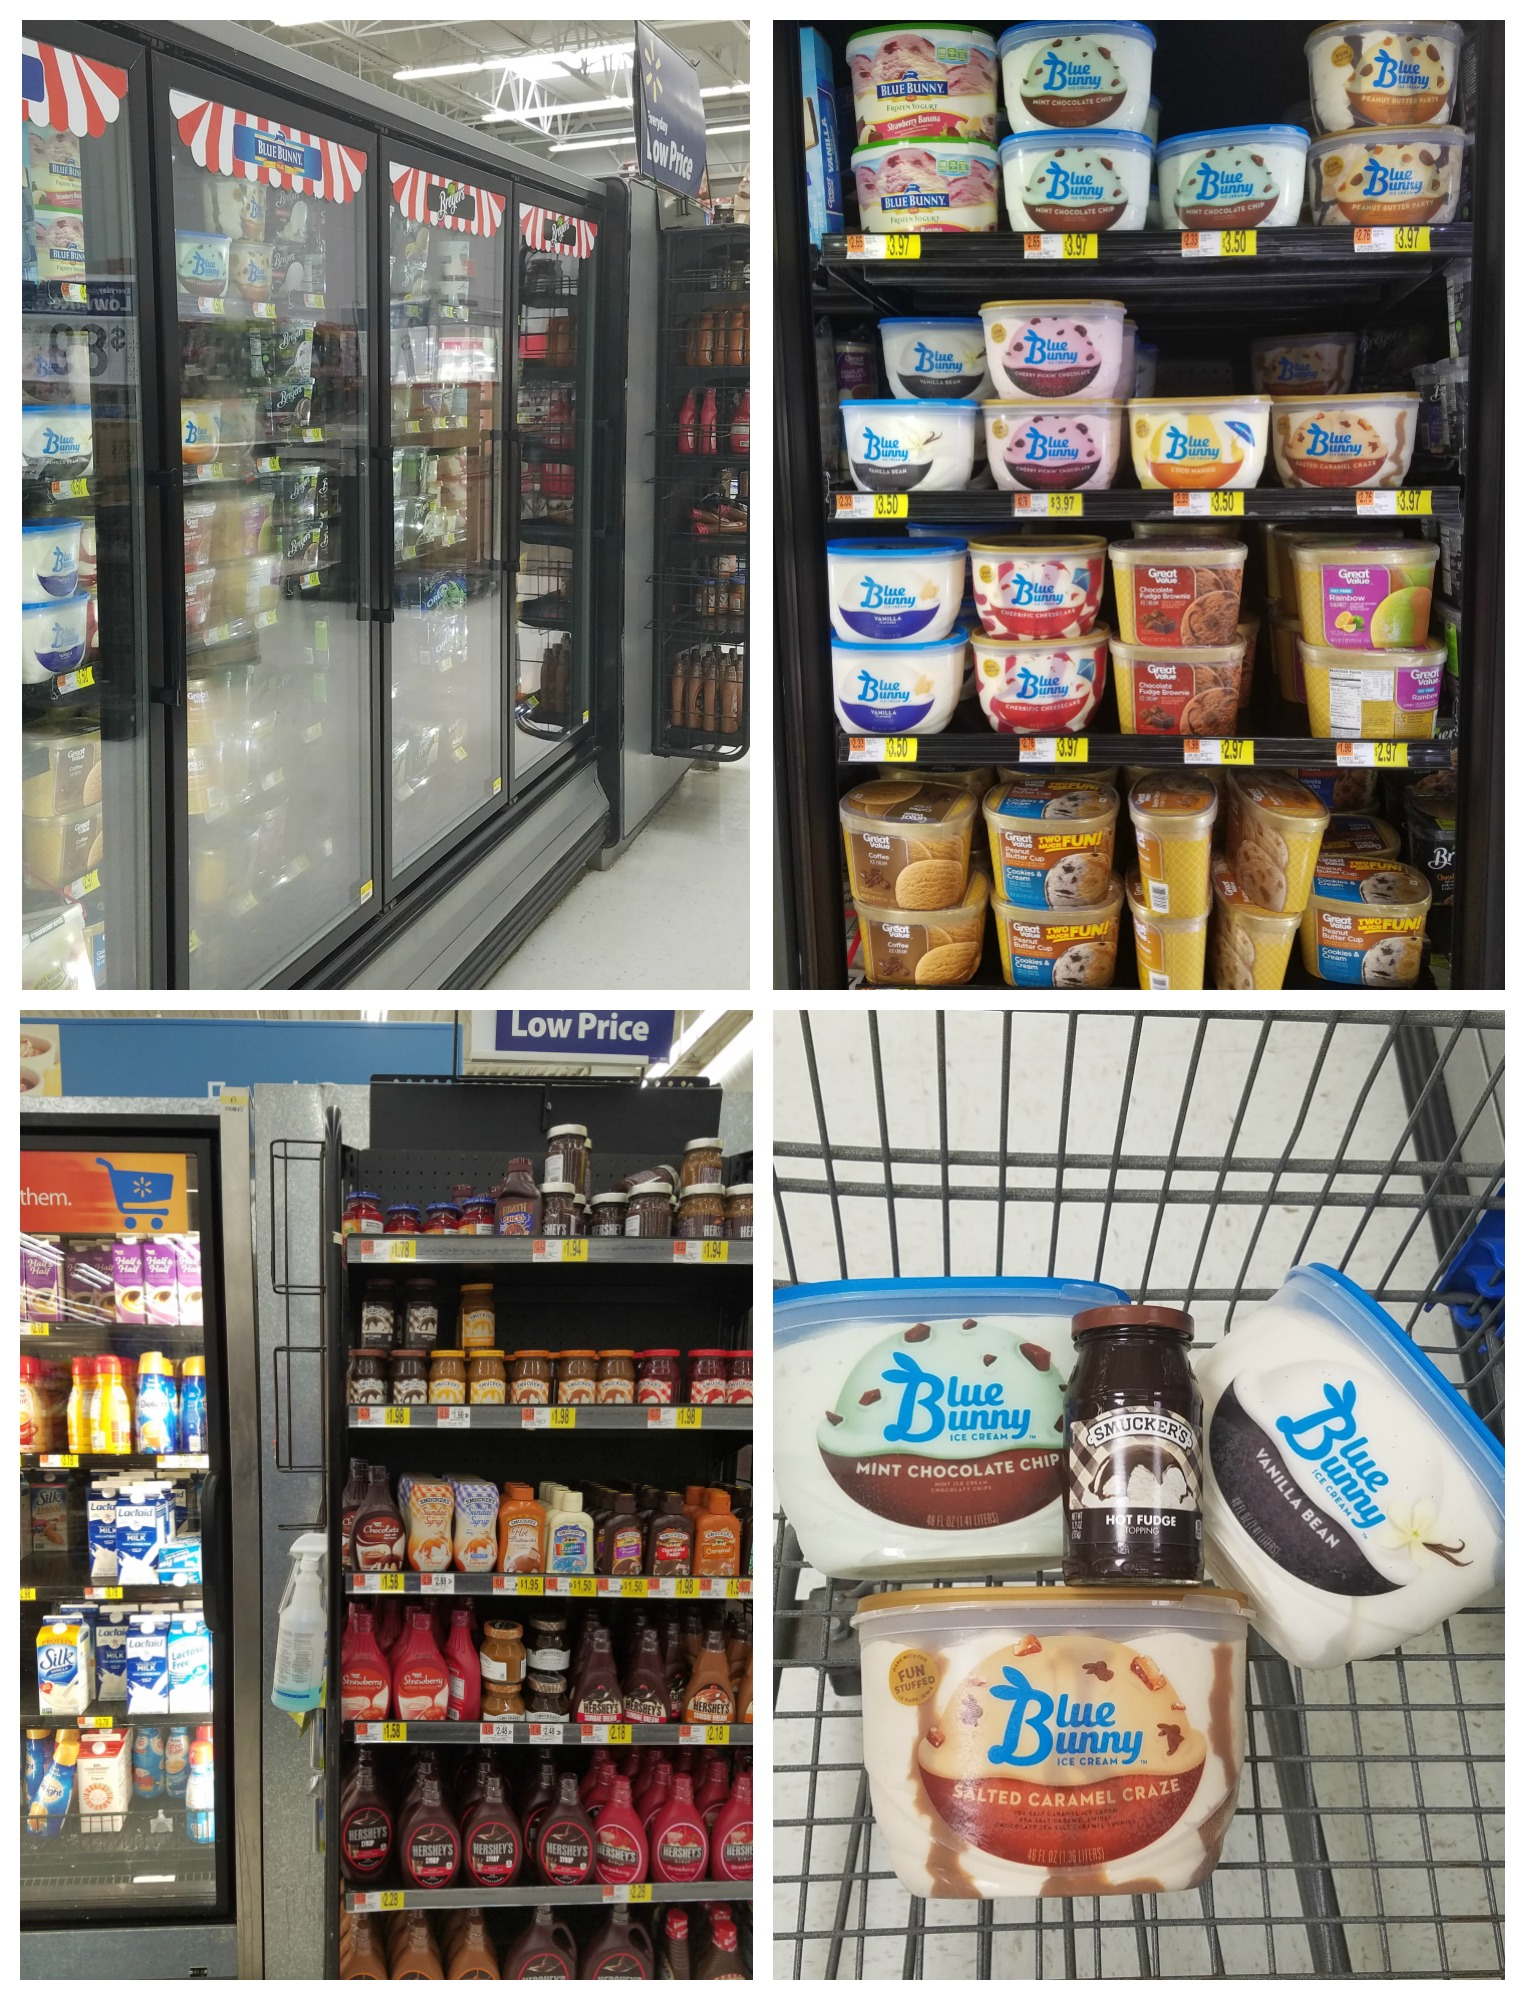 shopping at walmart for ice cream and toppings